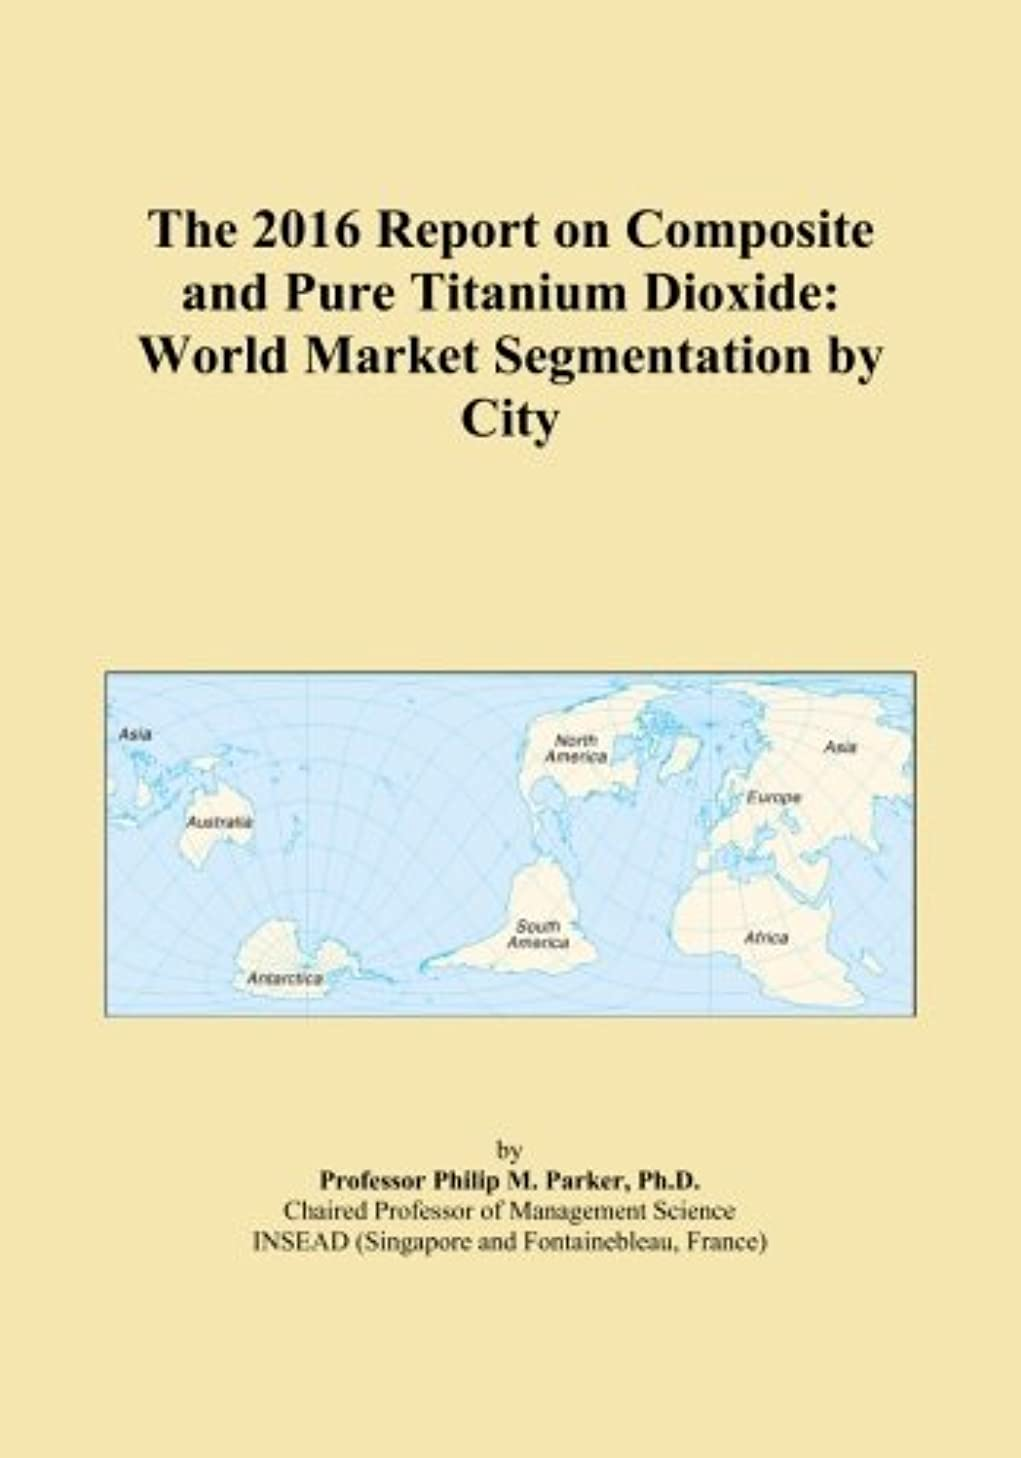 抵抗アーティキュレーション山The 2016 Report on Composite and Pure Titanium Dioxide: World Market Segmentation by City